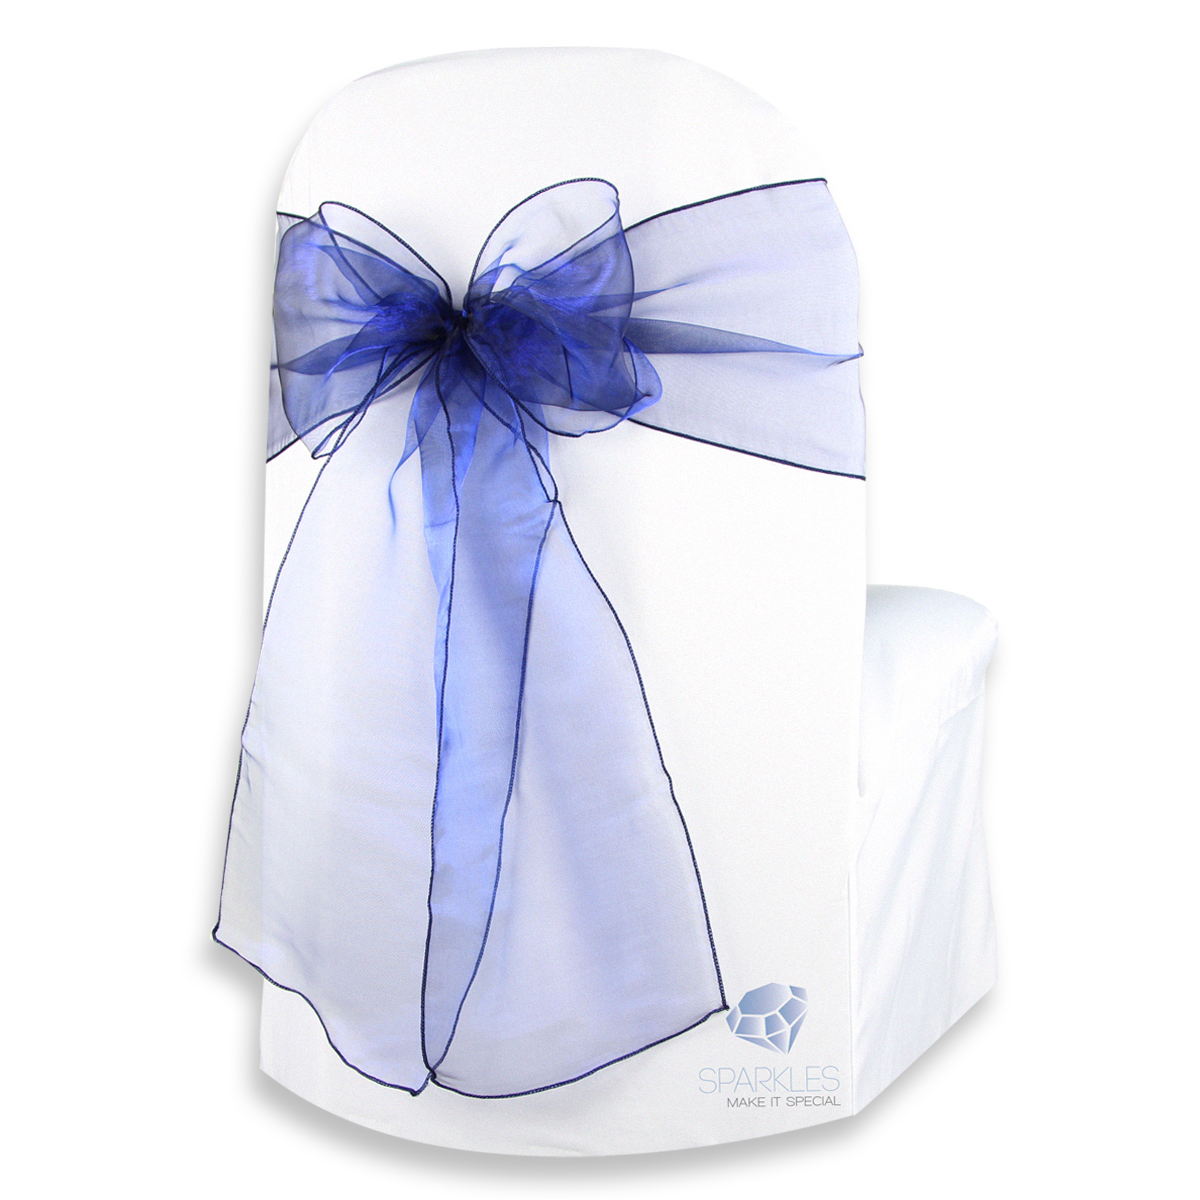 chair covers and bows ebay saddle office west elm 200 pcs organza cover bow sash 108 quotx8 quot navy blue